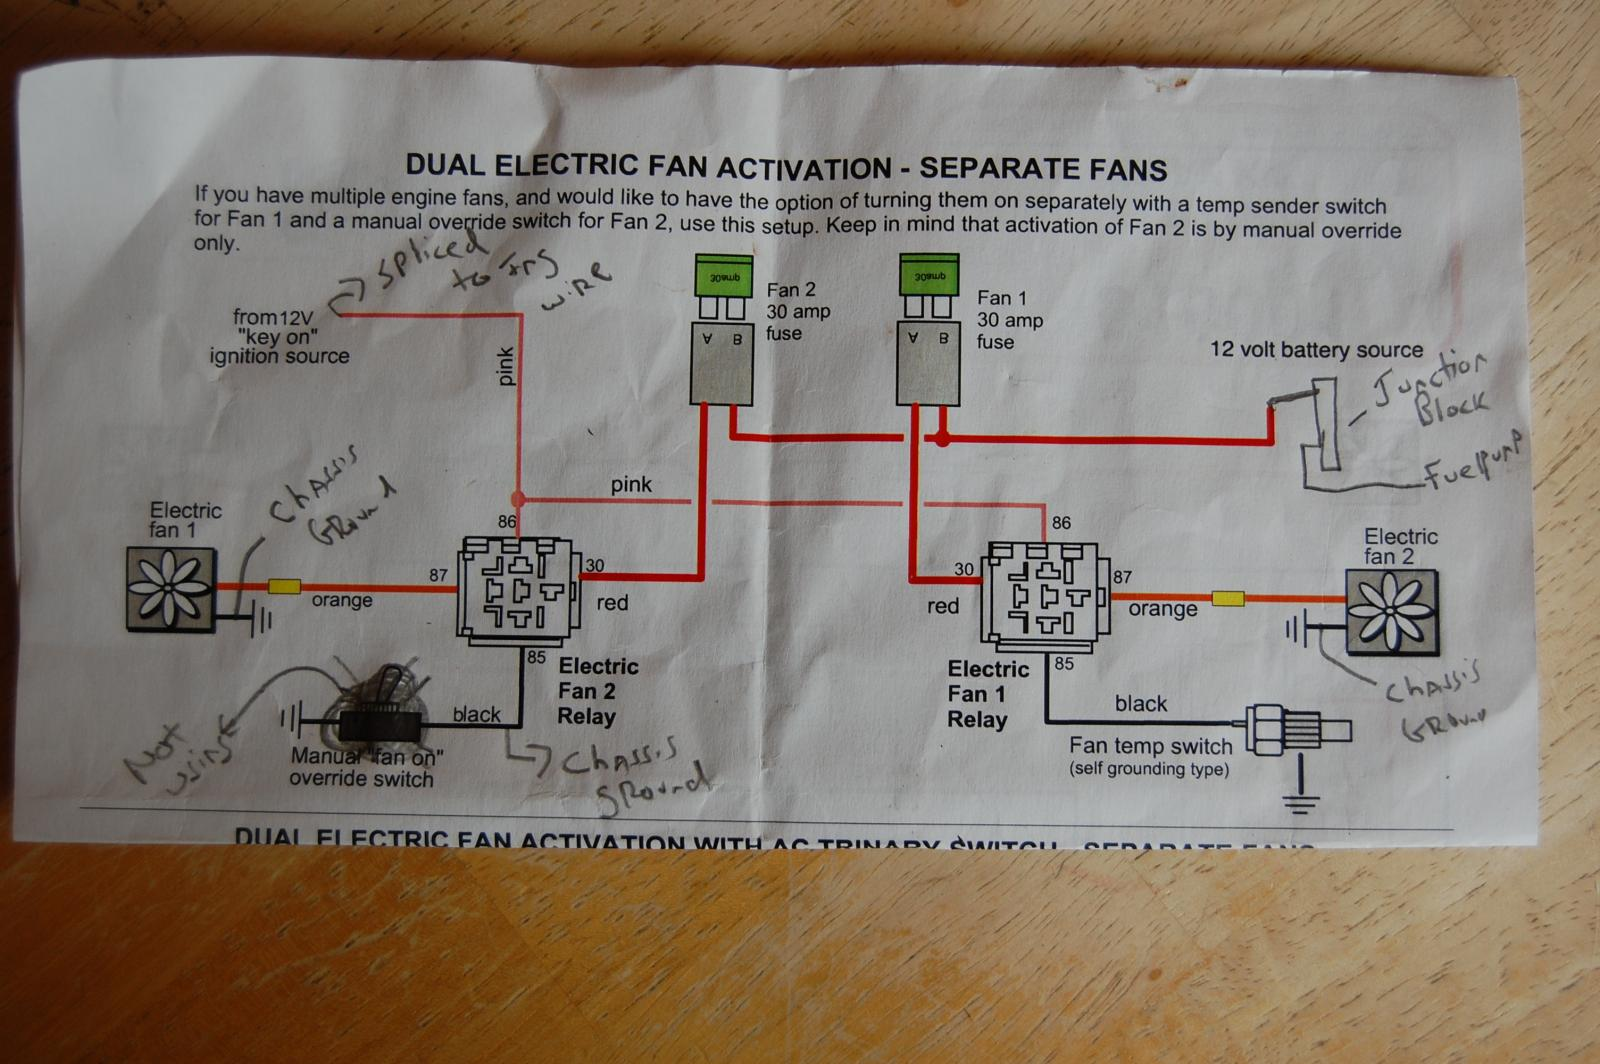 spal electric fan wiring diagram schematics and wiring diagrams spal dual fan